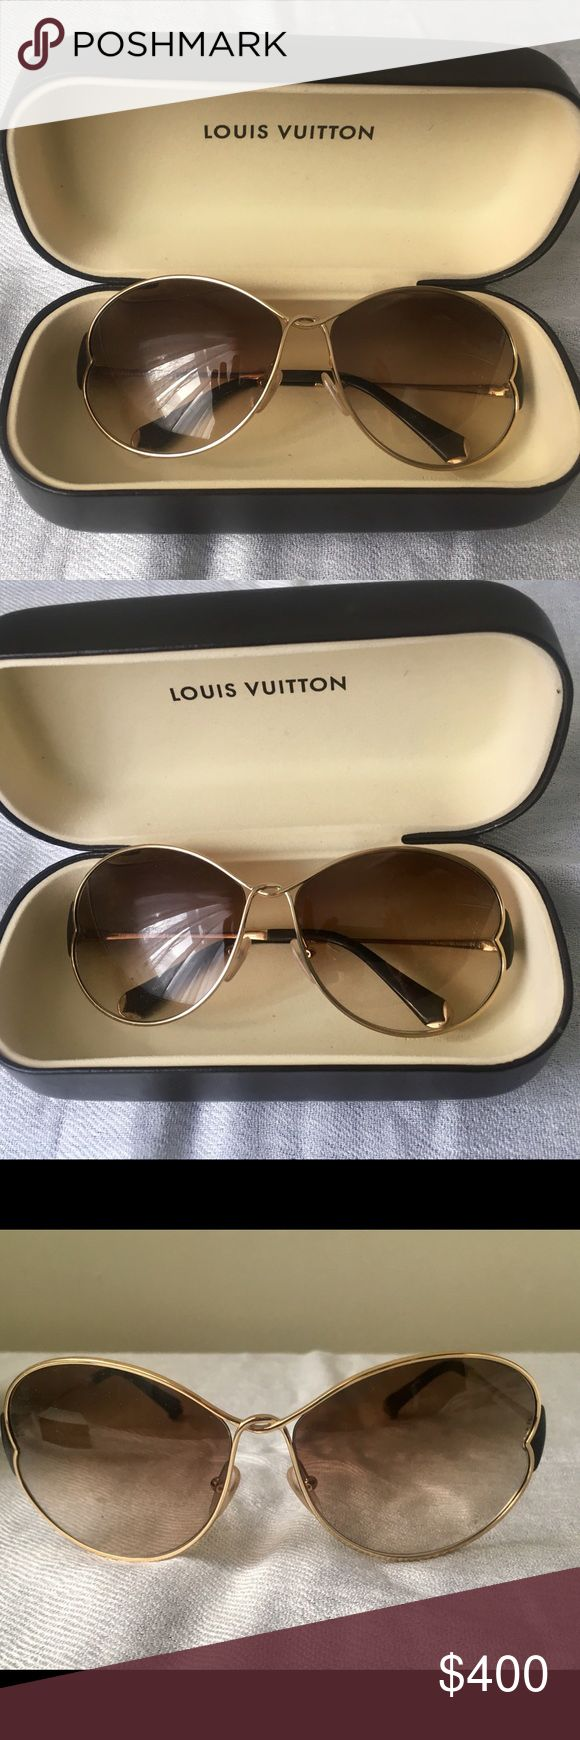 Louis Vuitton Daisy Sunglasses Louis Vuitton Daisy Sunglasses. Handmade in Italy. Serial # J0142   These are authentic and I do have the paperwork somewhere; however, I don't know where that somewhere is right now.   I've only worn these one time (and it was very brief), because I was afraid I'd scratch them and they've been in their case ever since. There are no scratches that I can see. Louis Vuitton Accessories Sunglasses